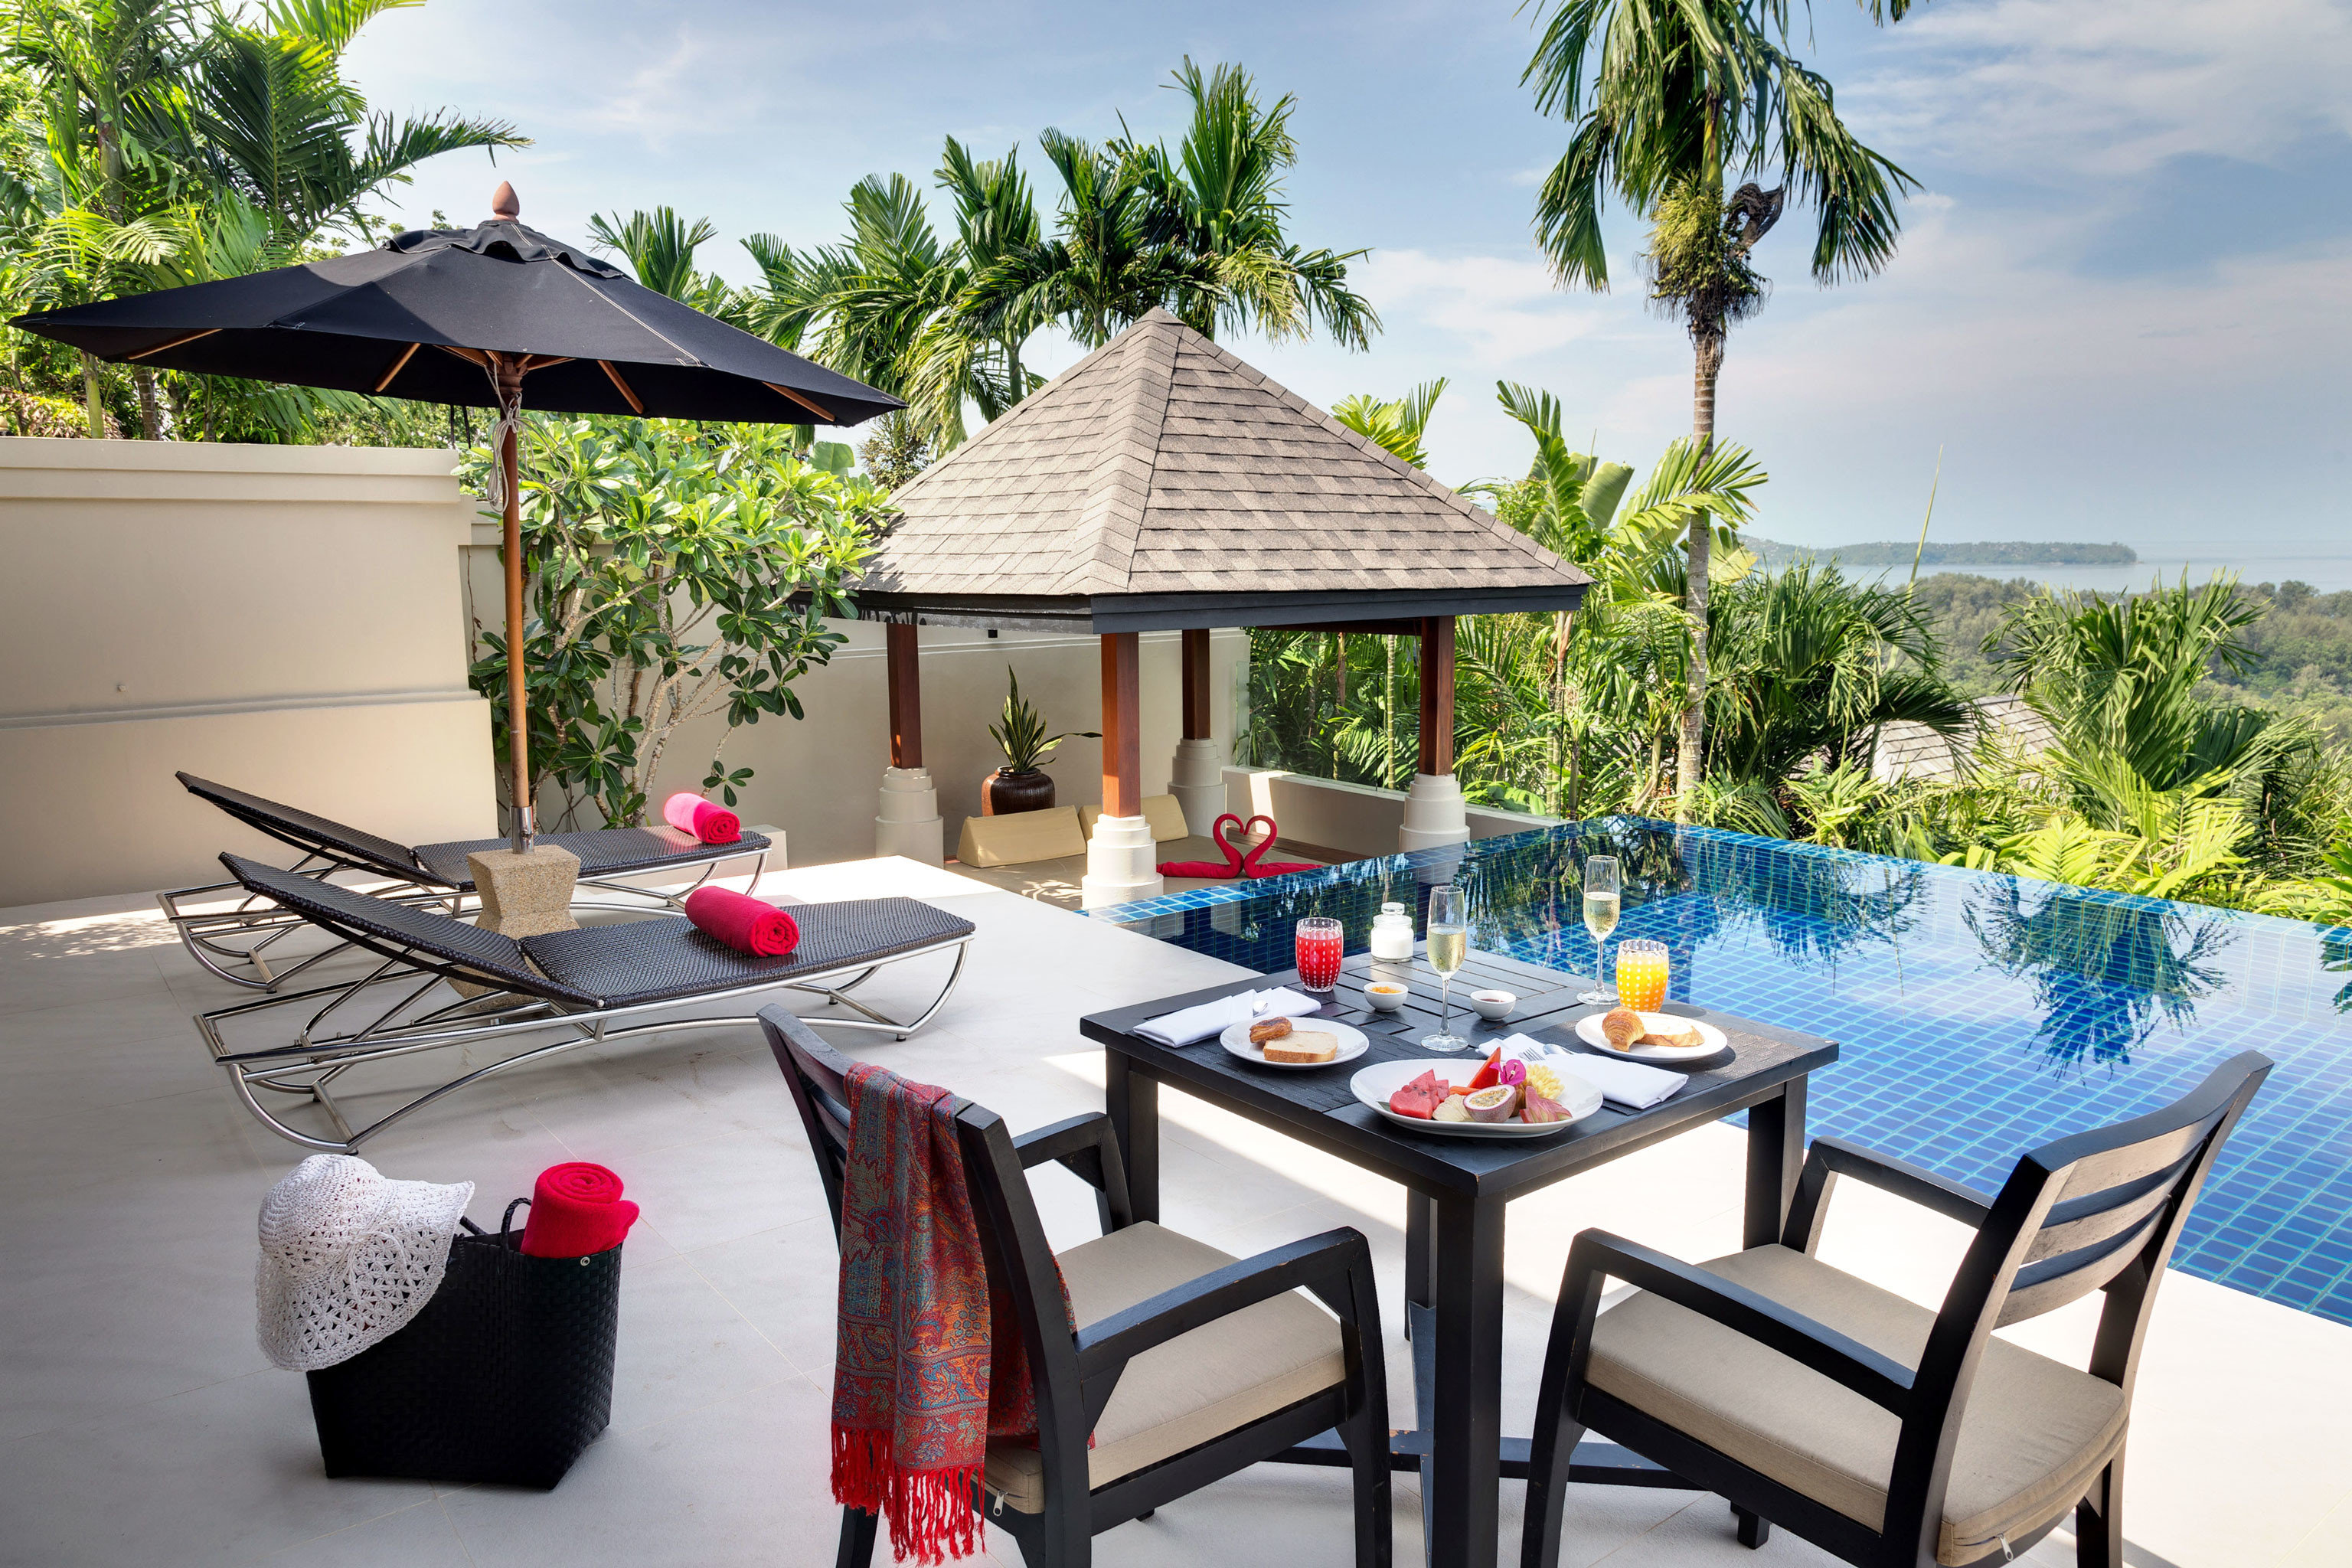 Beachfront Dining Luxury Modern Pool tree chair property home Villa cottage Resort backyard outdoor structure